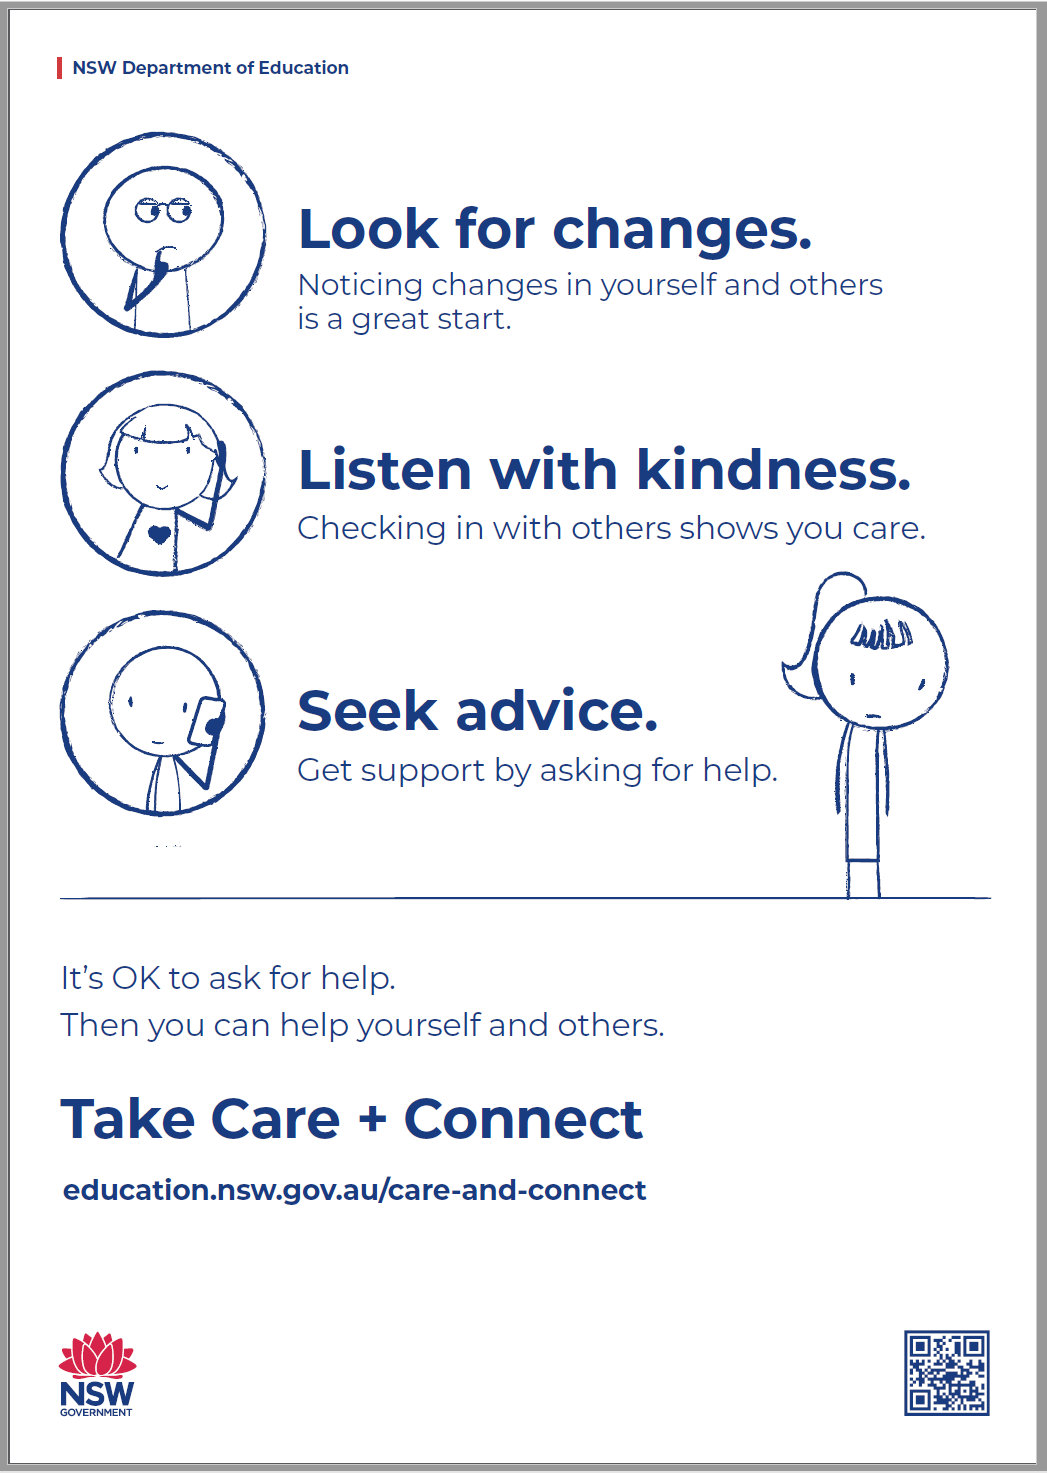 The Care and Connect instructional poster thumbnail, featuring some text - Look for changes, listen with kindness and seek advice.